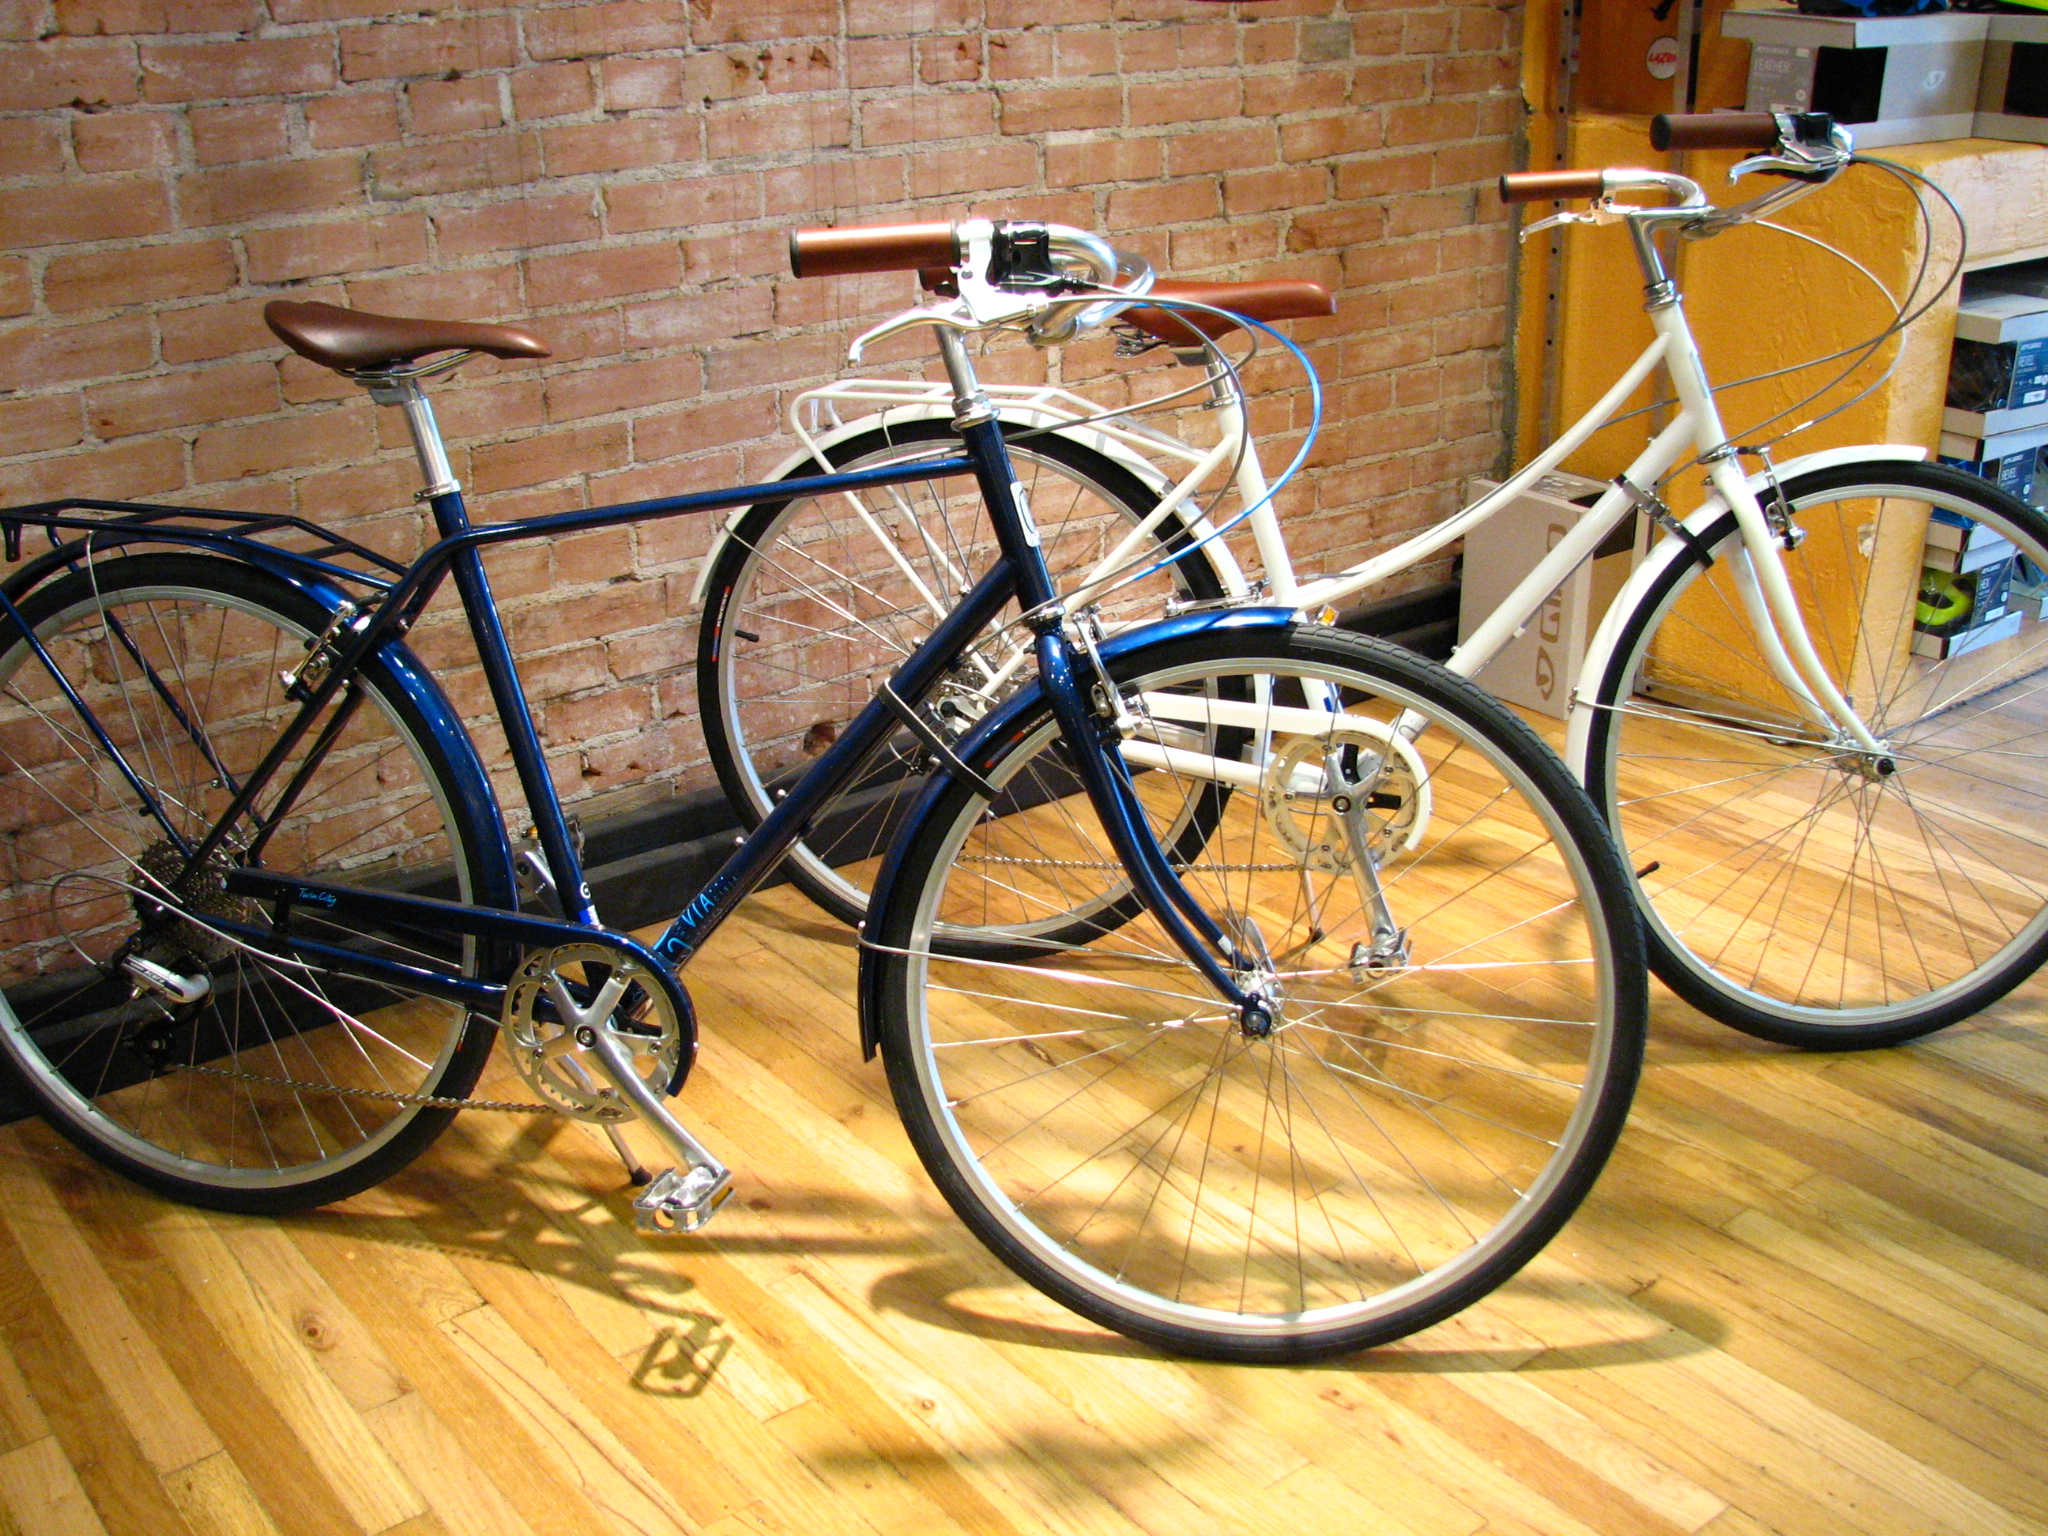 Civia Twin City townies: Were $600, now $475 (a sweet townie at a sweet price!)